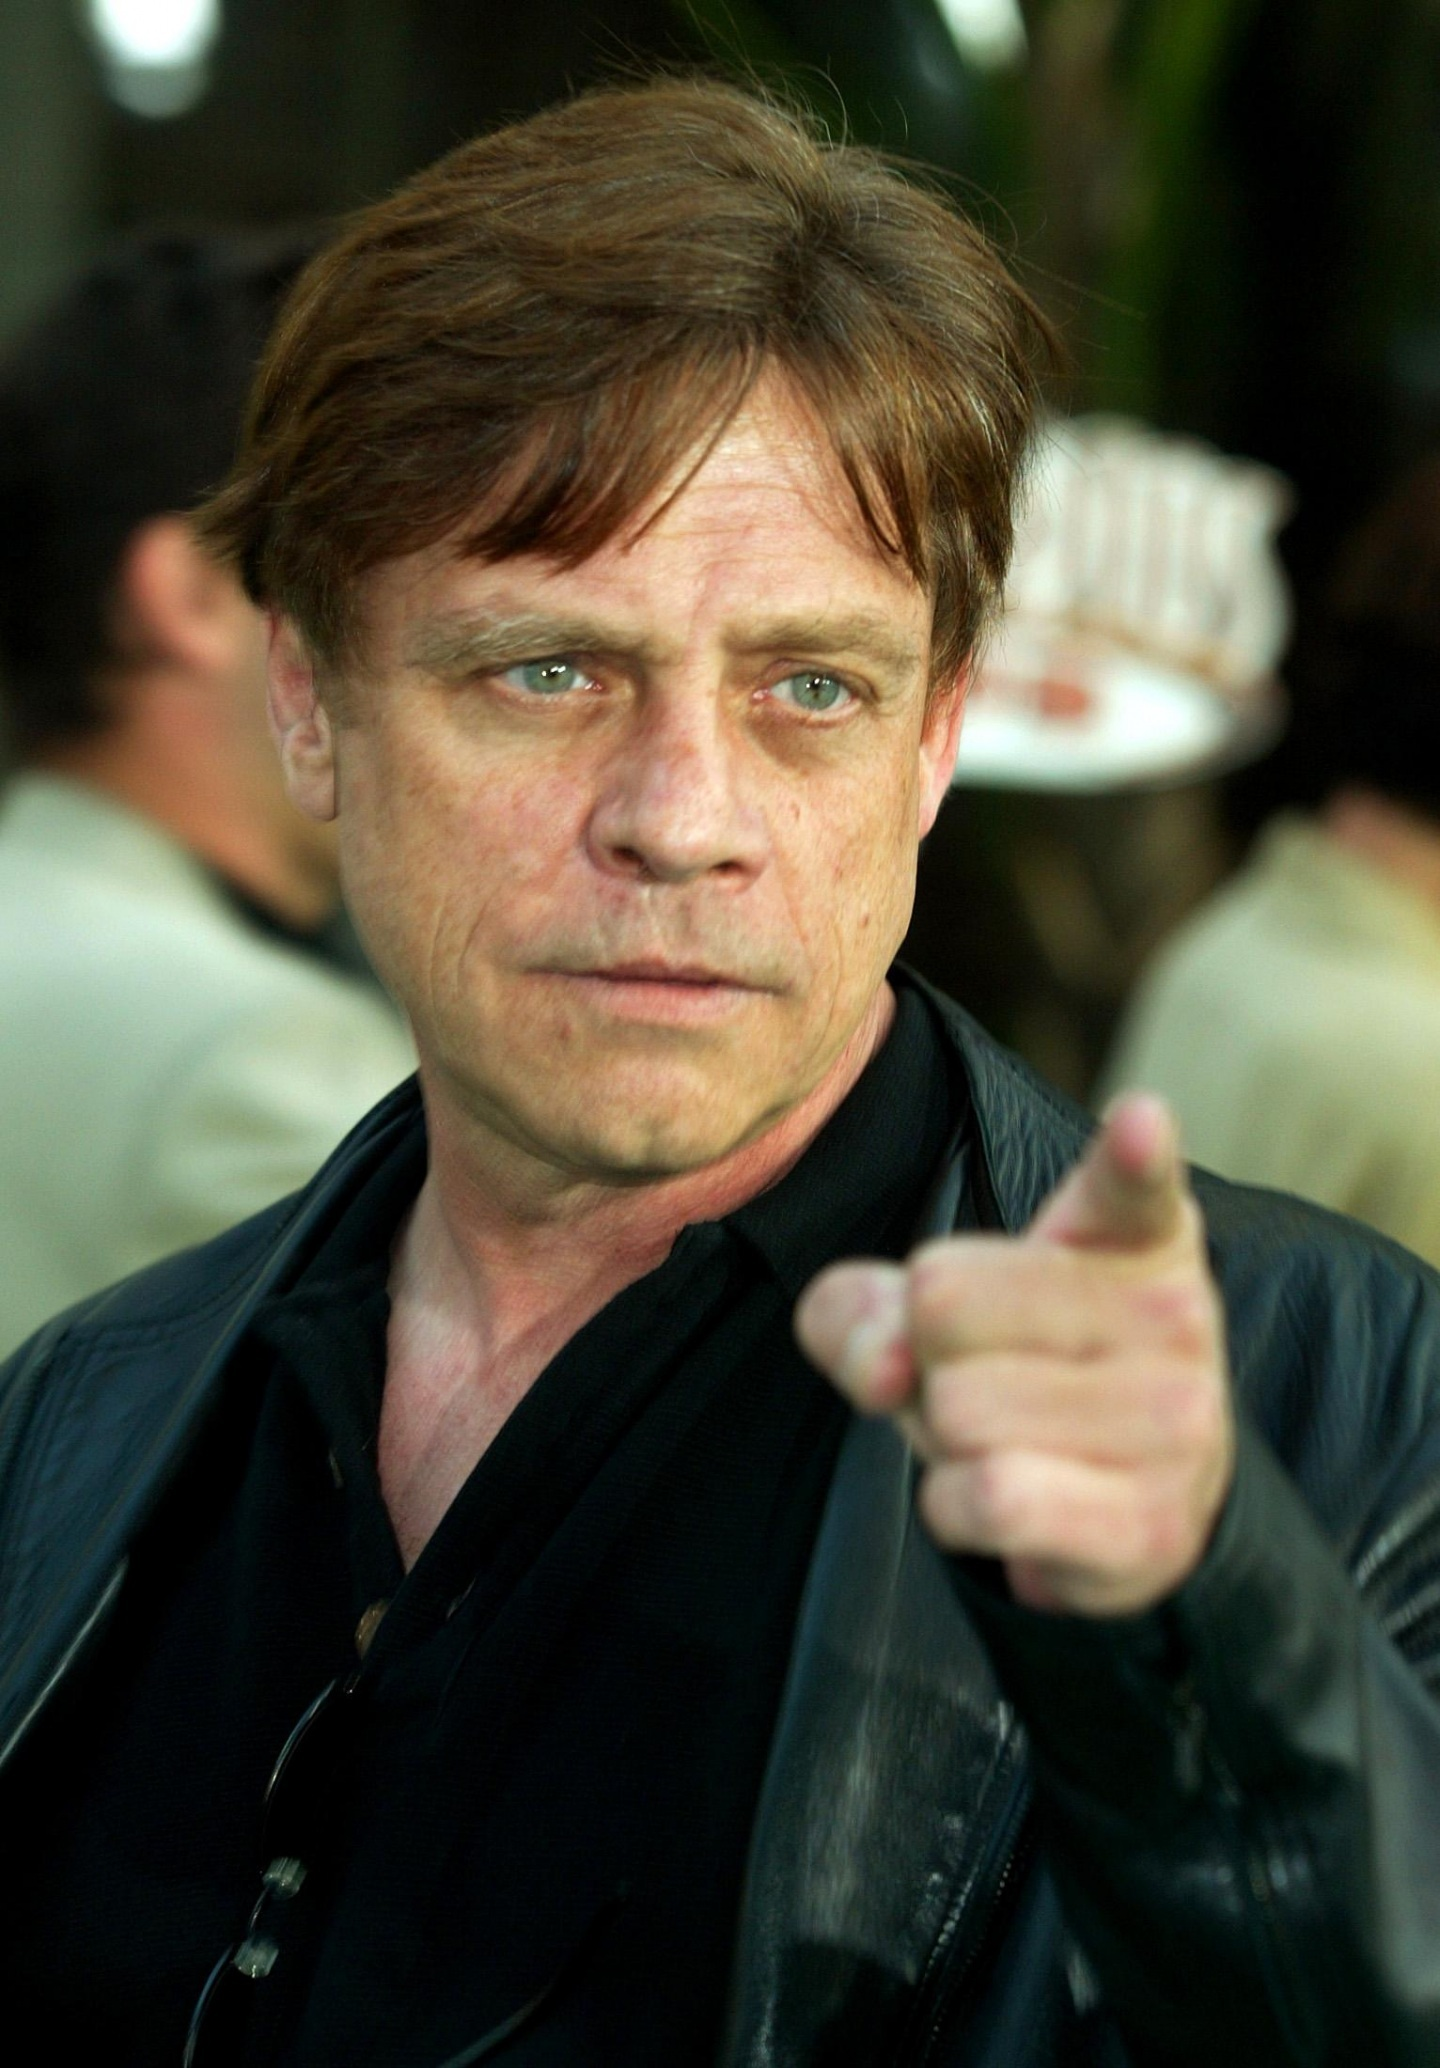 Luke Skywalker Actor Car Accident Before And After